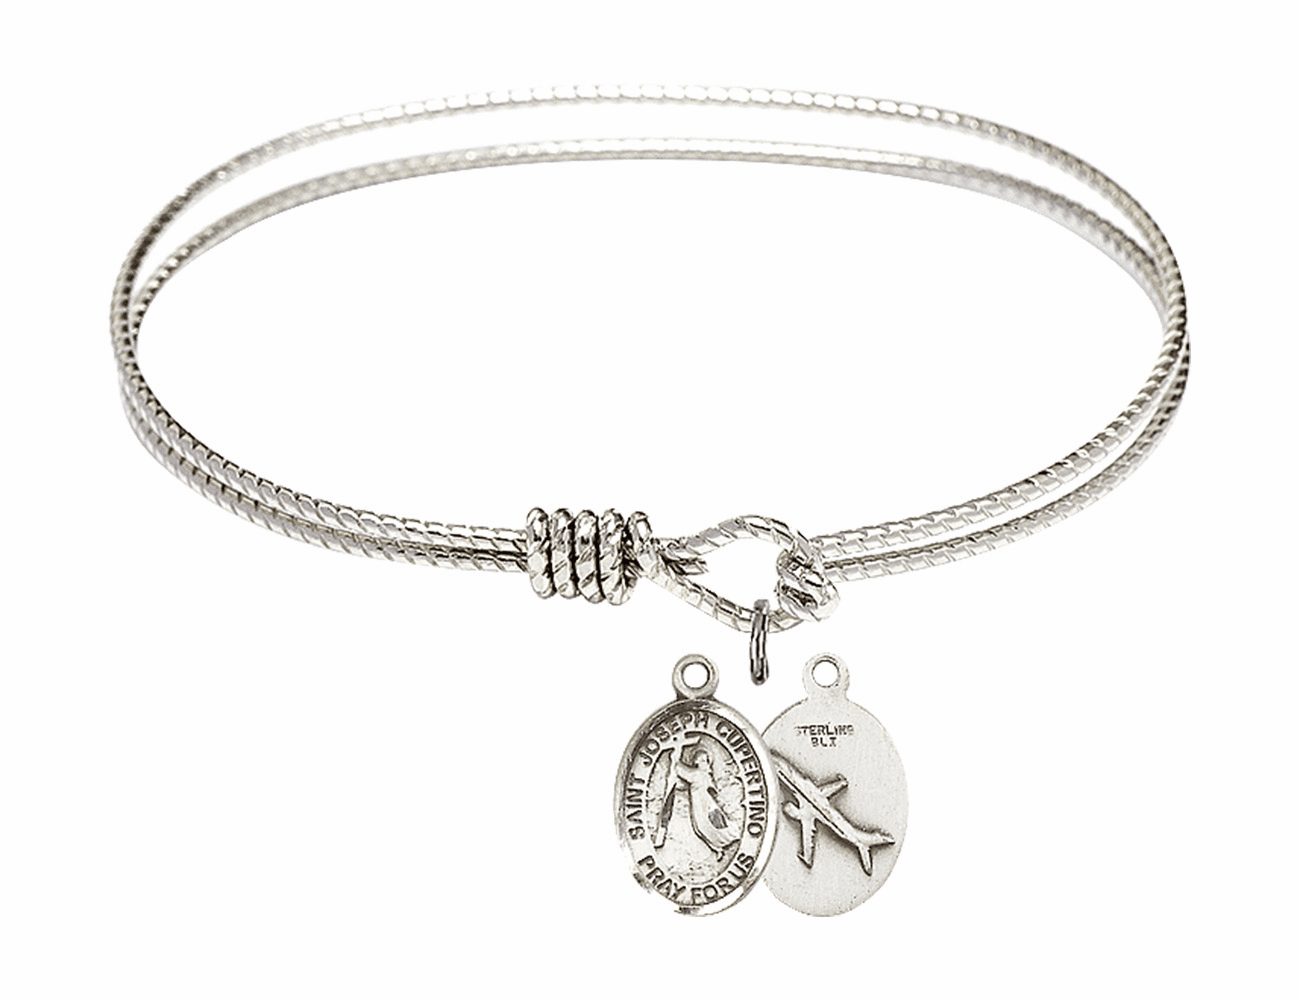 Twisted Joseph of Cupertino Airplane Bangle Sterling Silver Charm Bracelet by Bliss